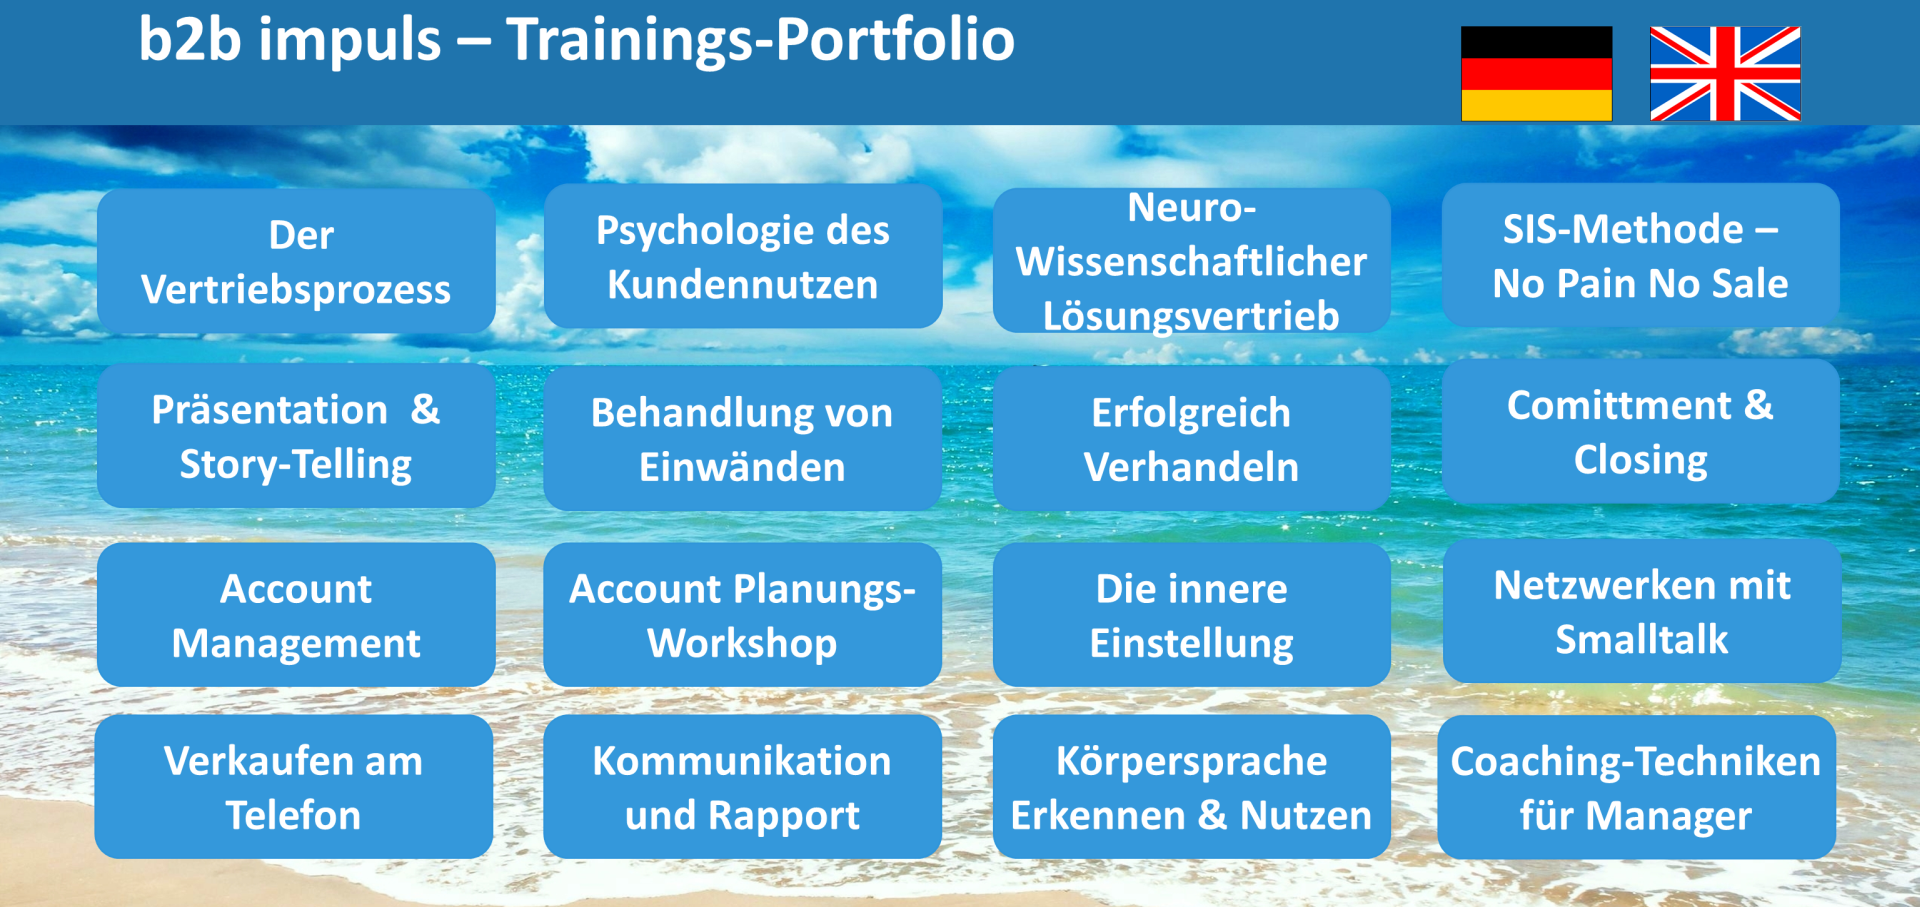 b2b impuls–Trainings-Portfolio